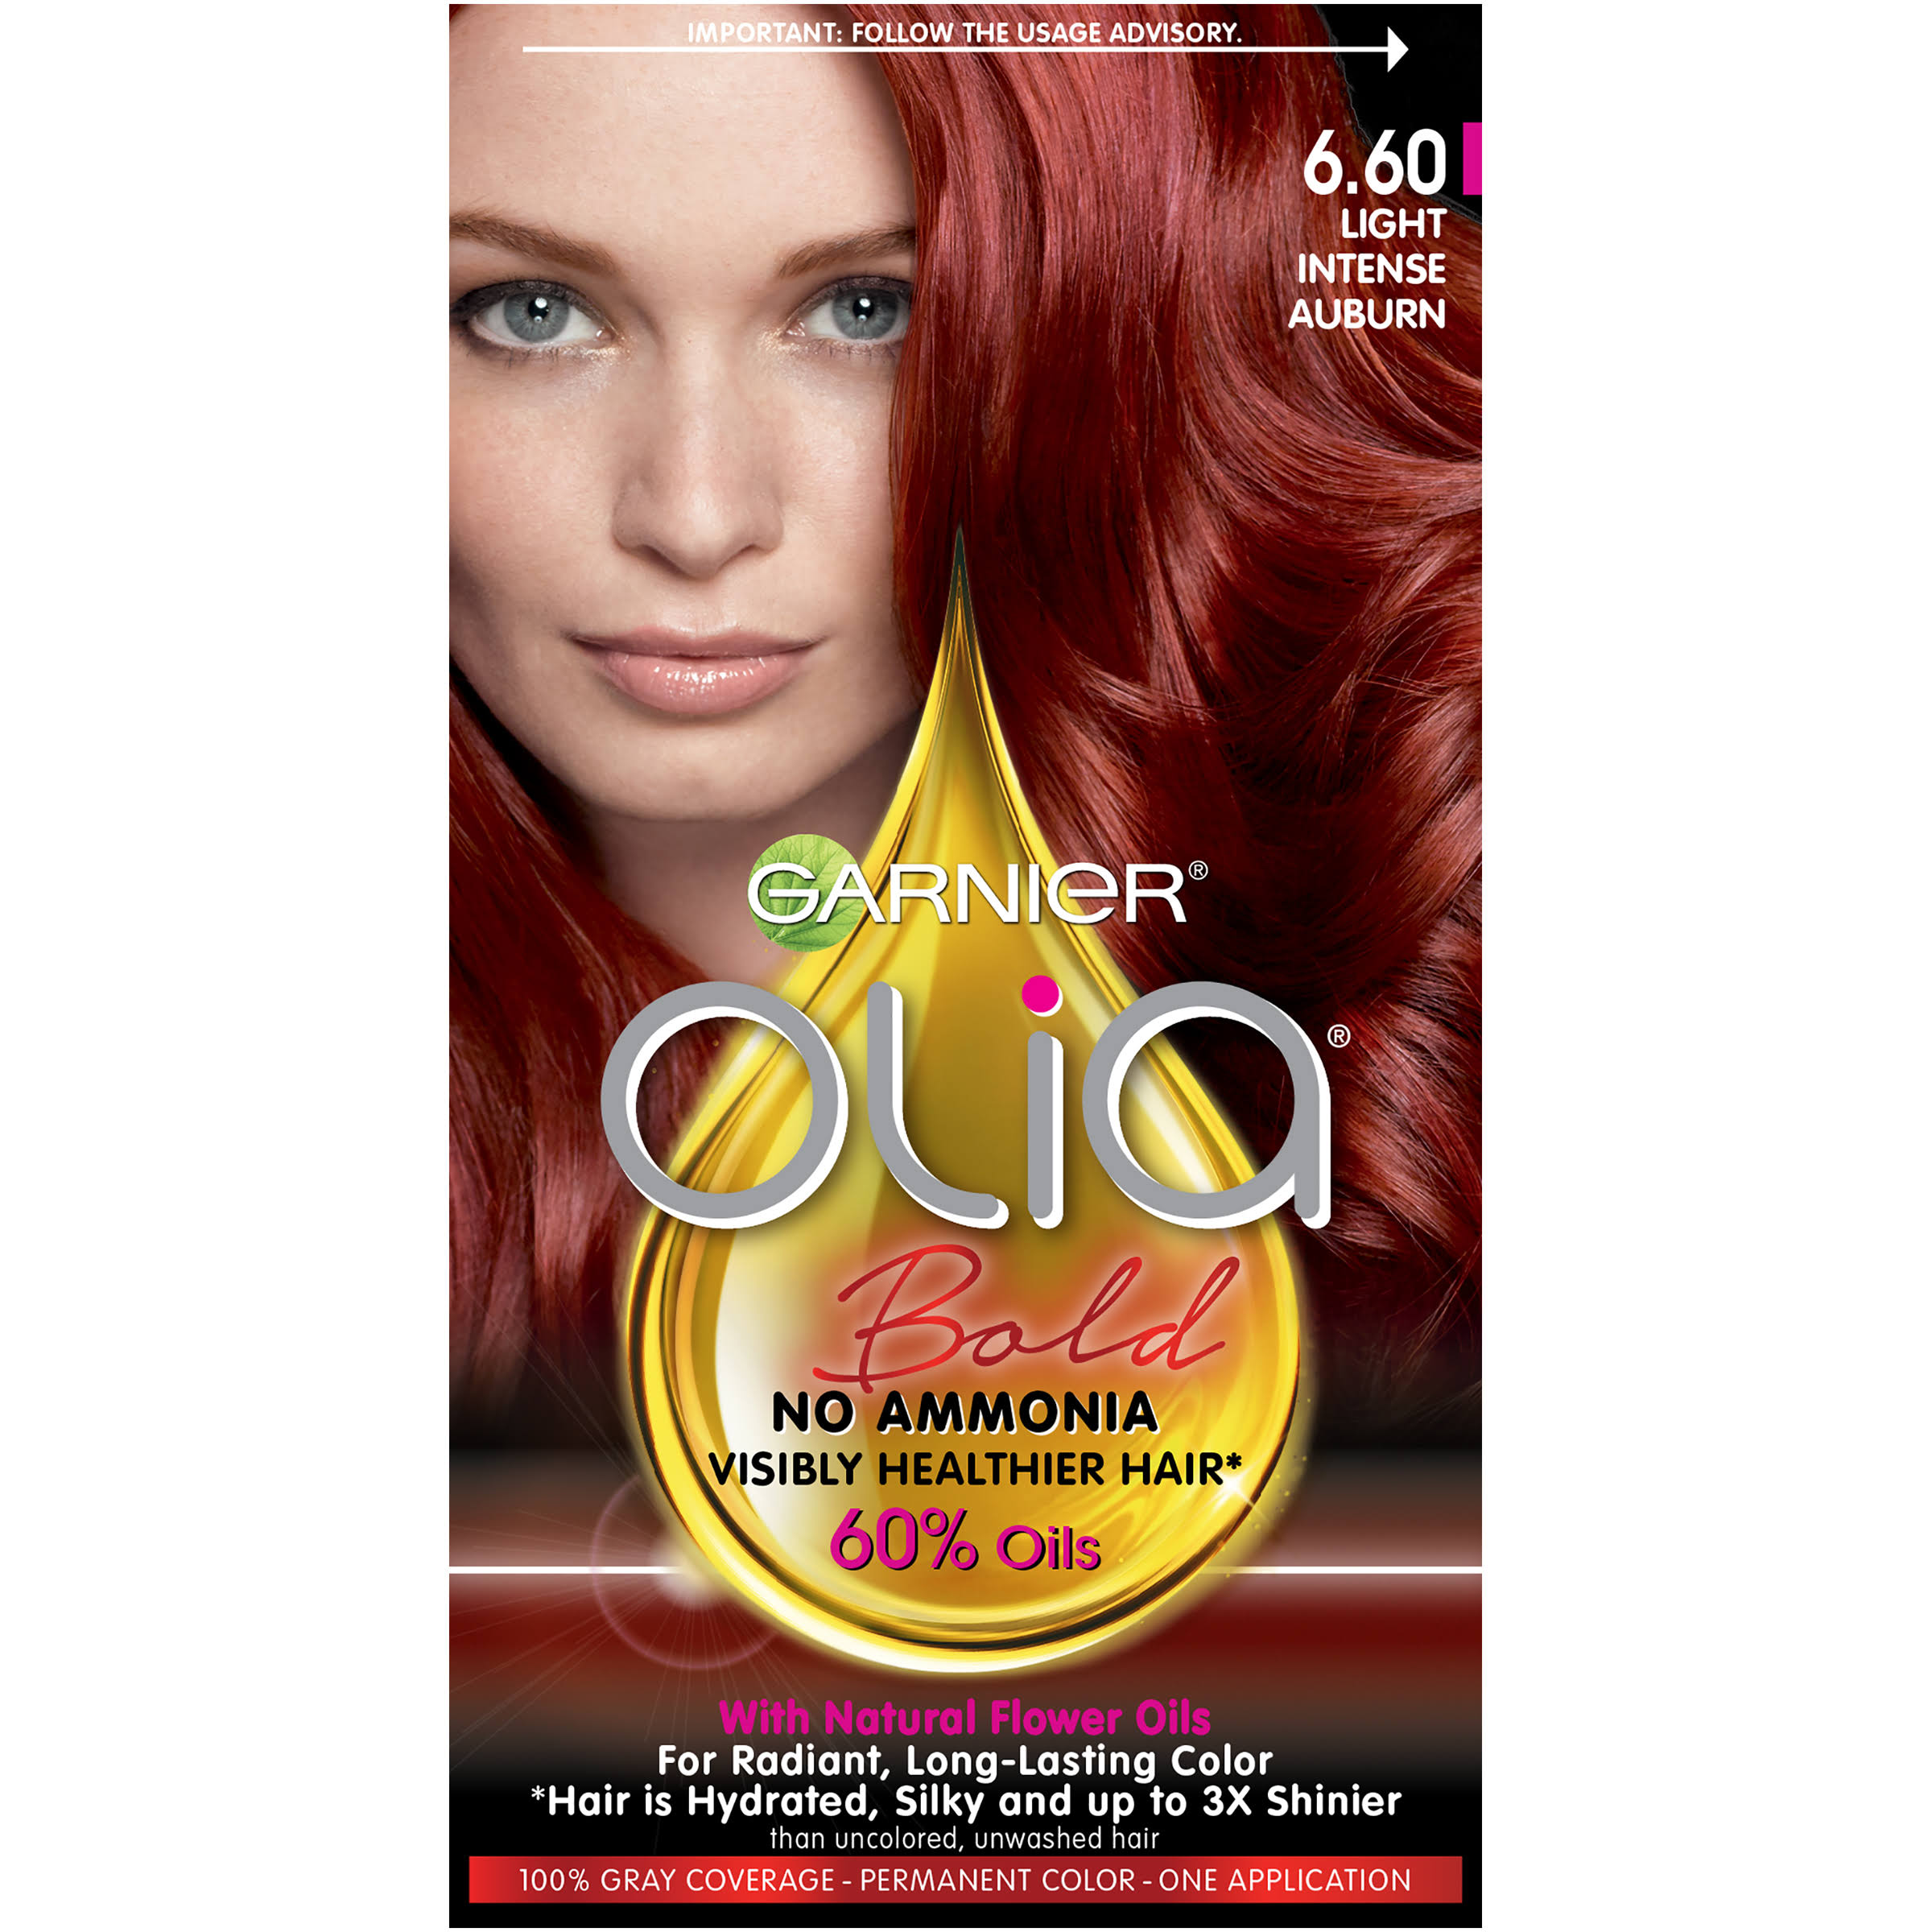 Garnier Olia Oil Powered Permanent Haircolor - 6.60 Light Intense